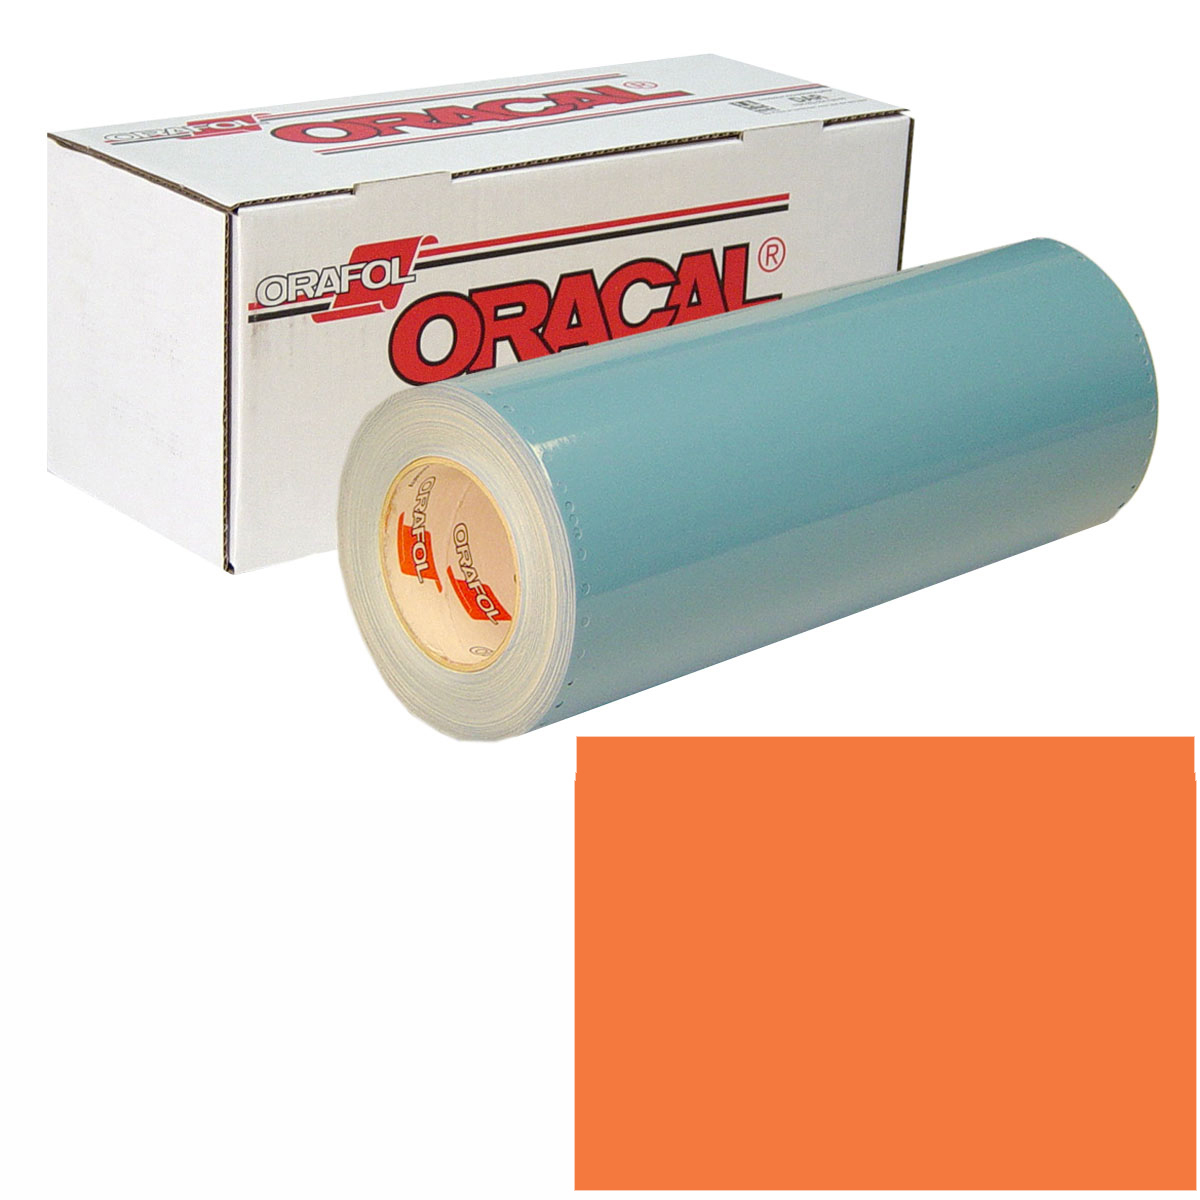 ORACAL 751 Unp 24In X 50Yd 033 Red Orange